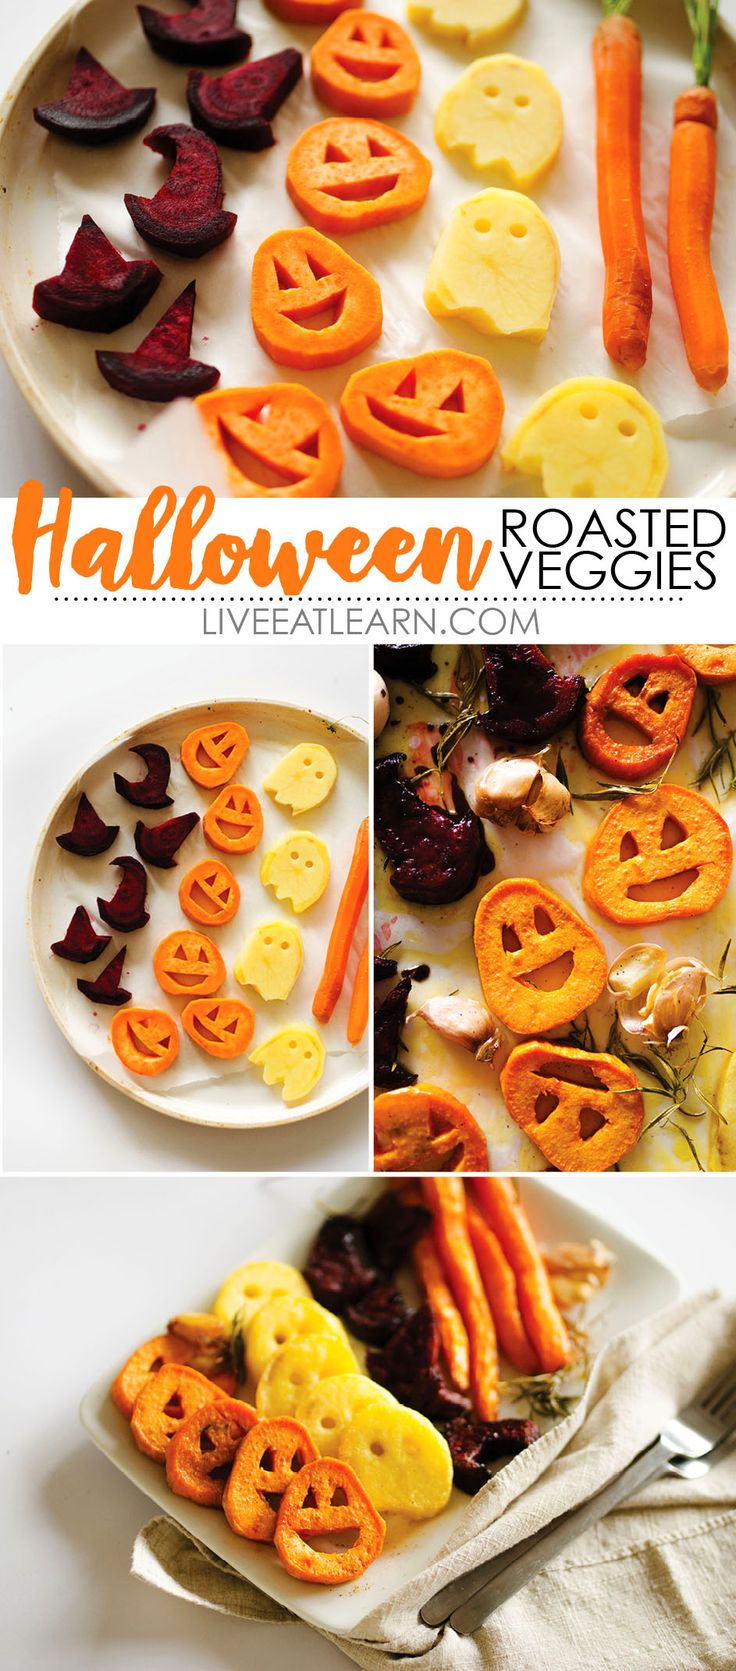 halloween roasted veggies - Funny Halloween Recipes